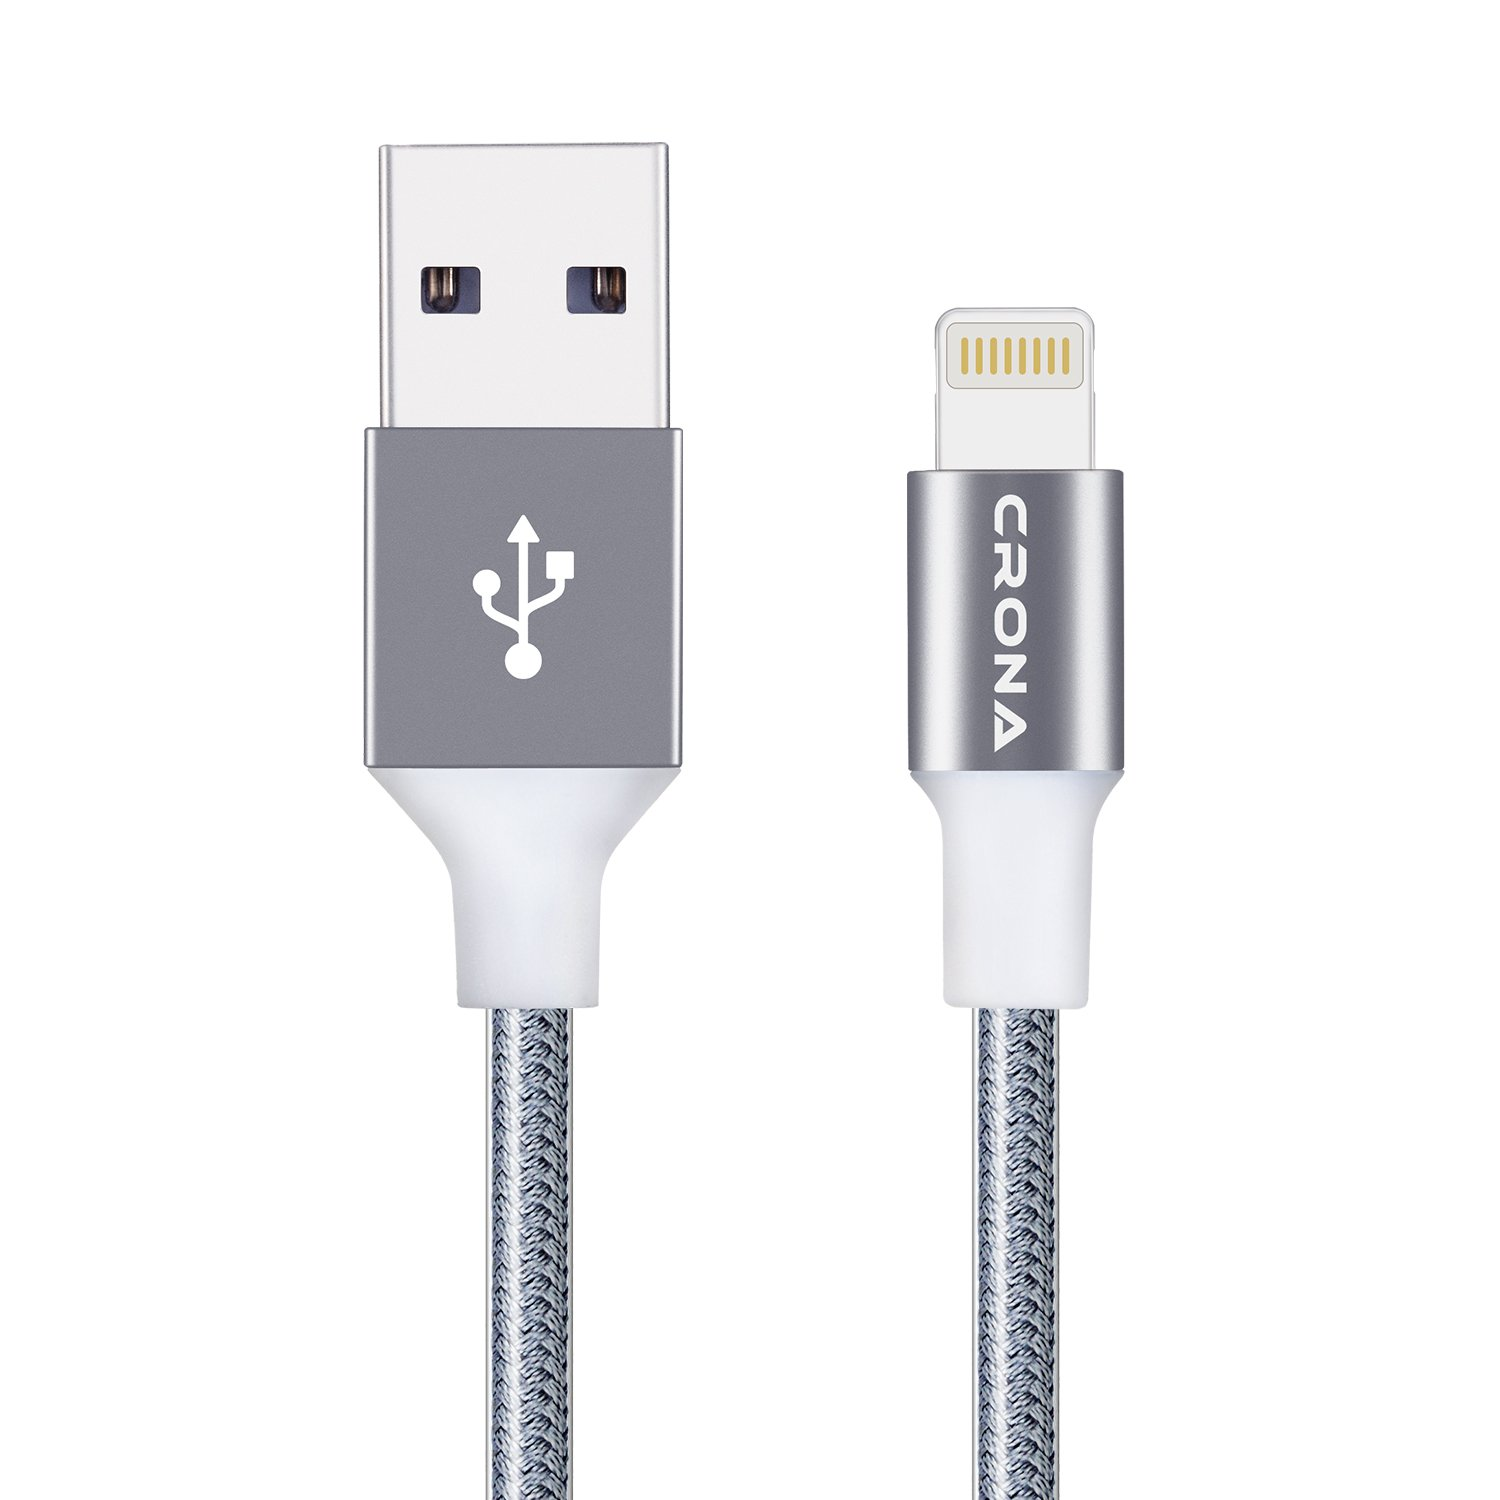 Amazon.com: CRONA Lightning Cables apple,iPhone Charging Cable Nylon ...